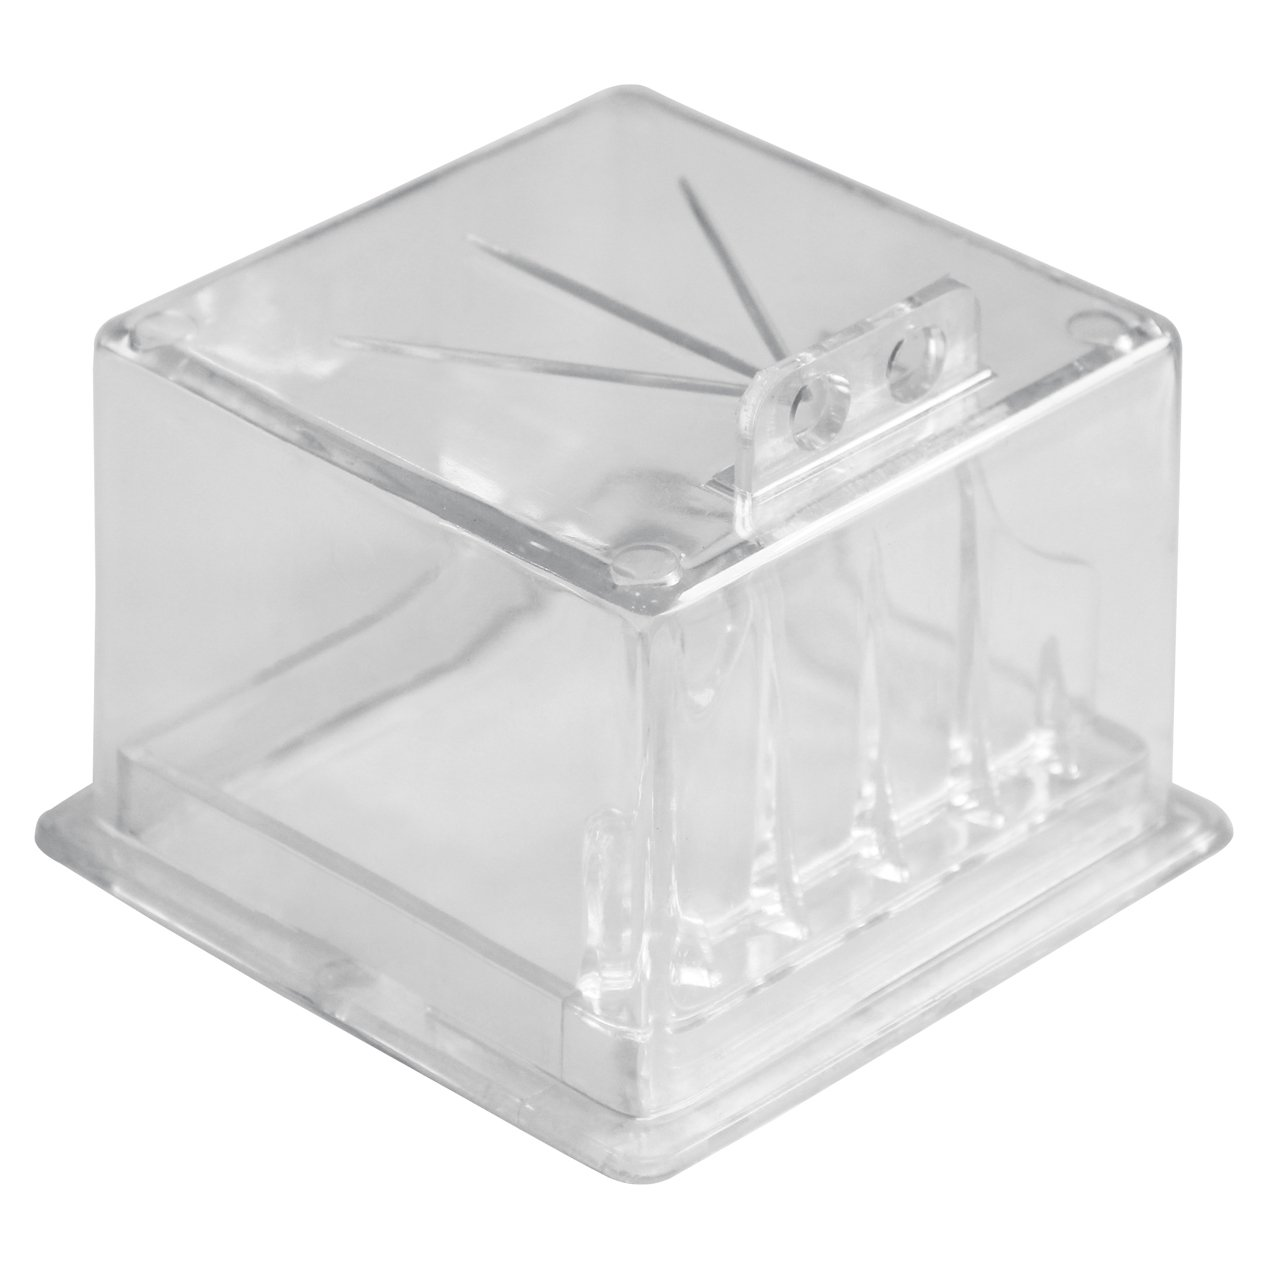 Lockout Safety Supply 7279 Electrical Panel Lockout Square Big Box, Clear